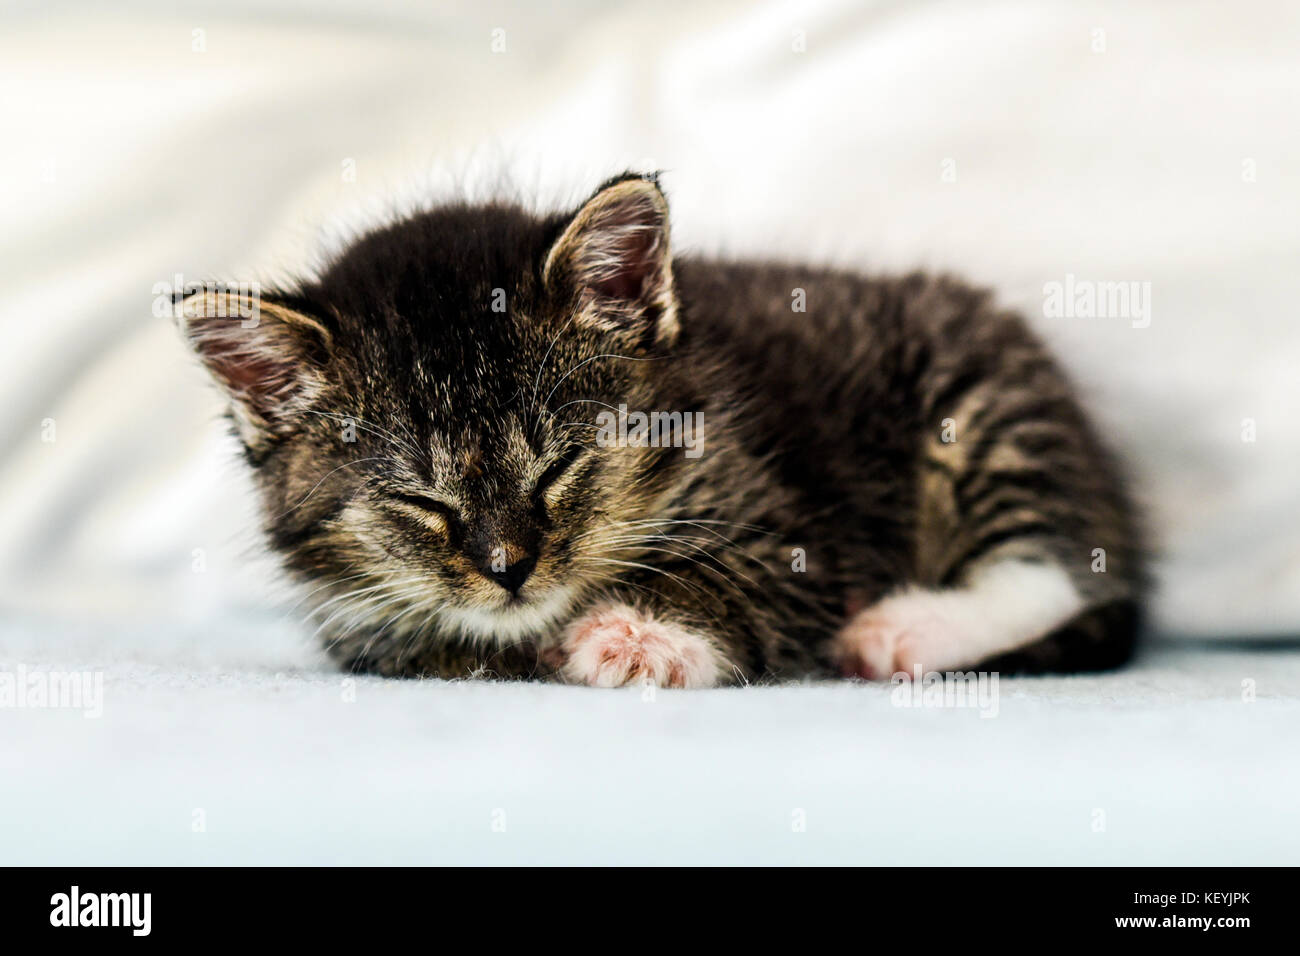 A cute little kitten lying and sleeping on a couch at home. - Stock Image